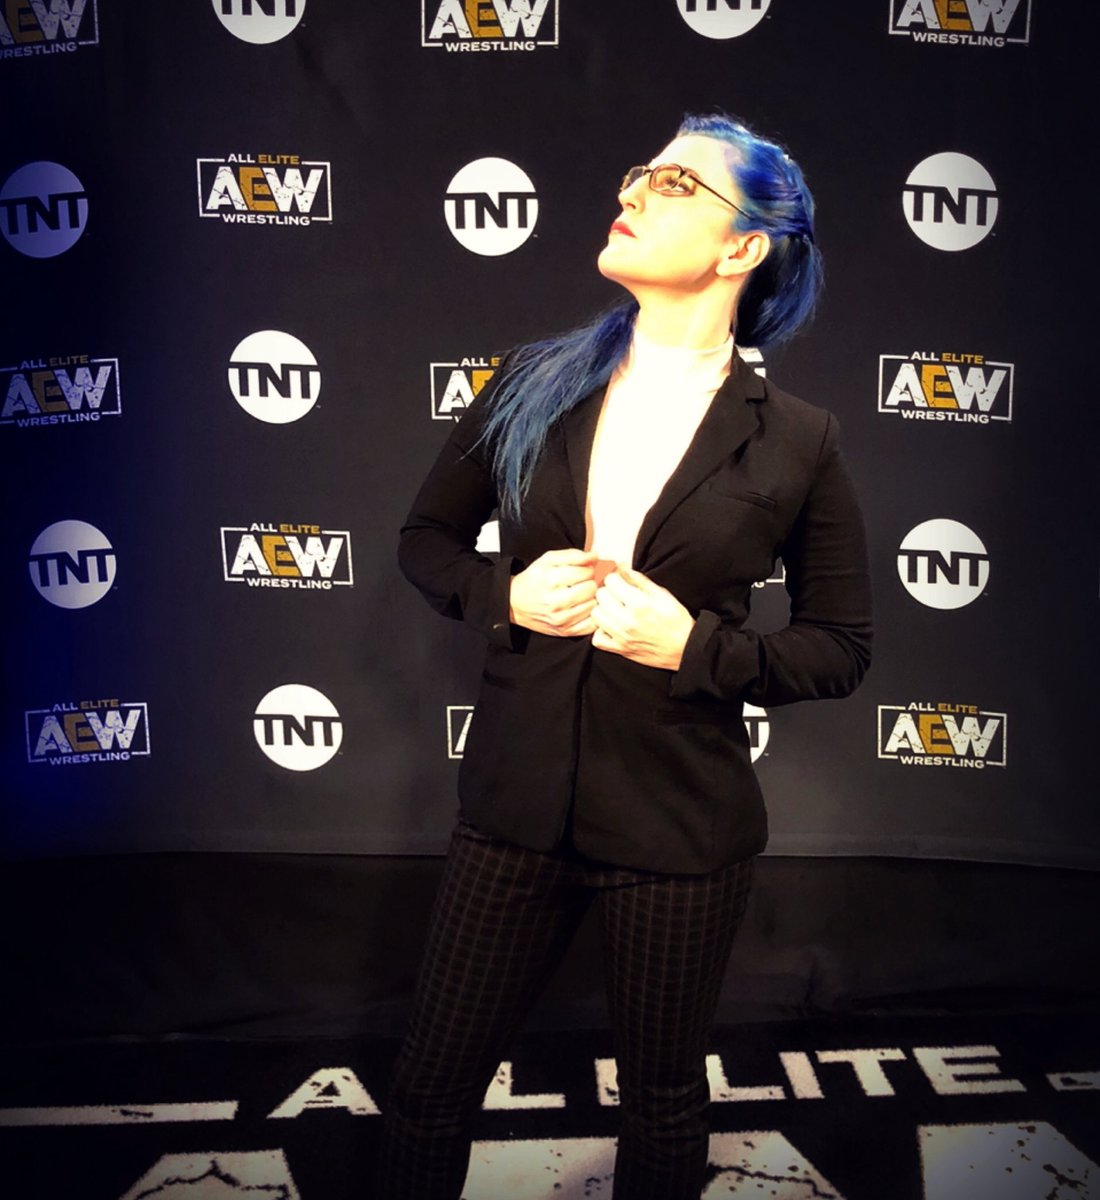 Another Wednesday, and another Dignified Dynamite!   Who all tuned in? How preposterously awesome was this show?  #AEWDynamite #TheLibrarian #AEW